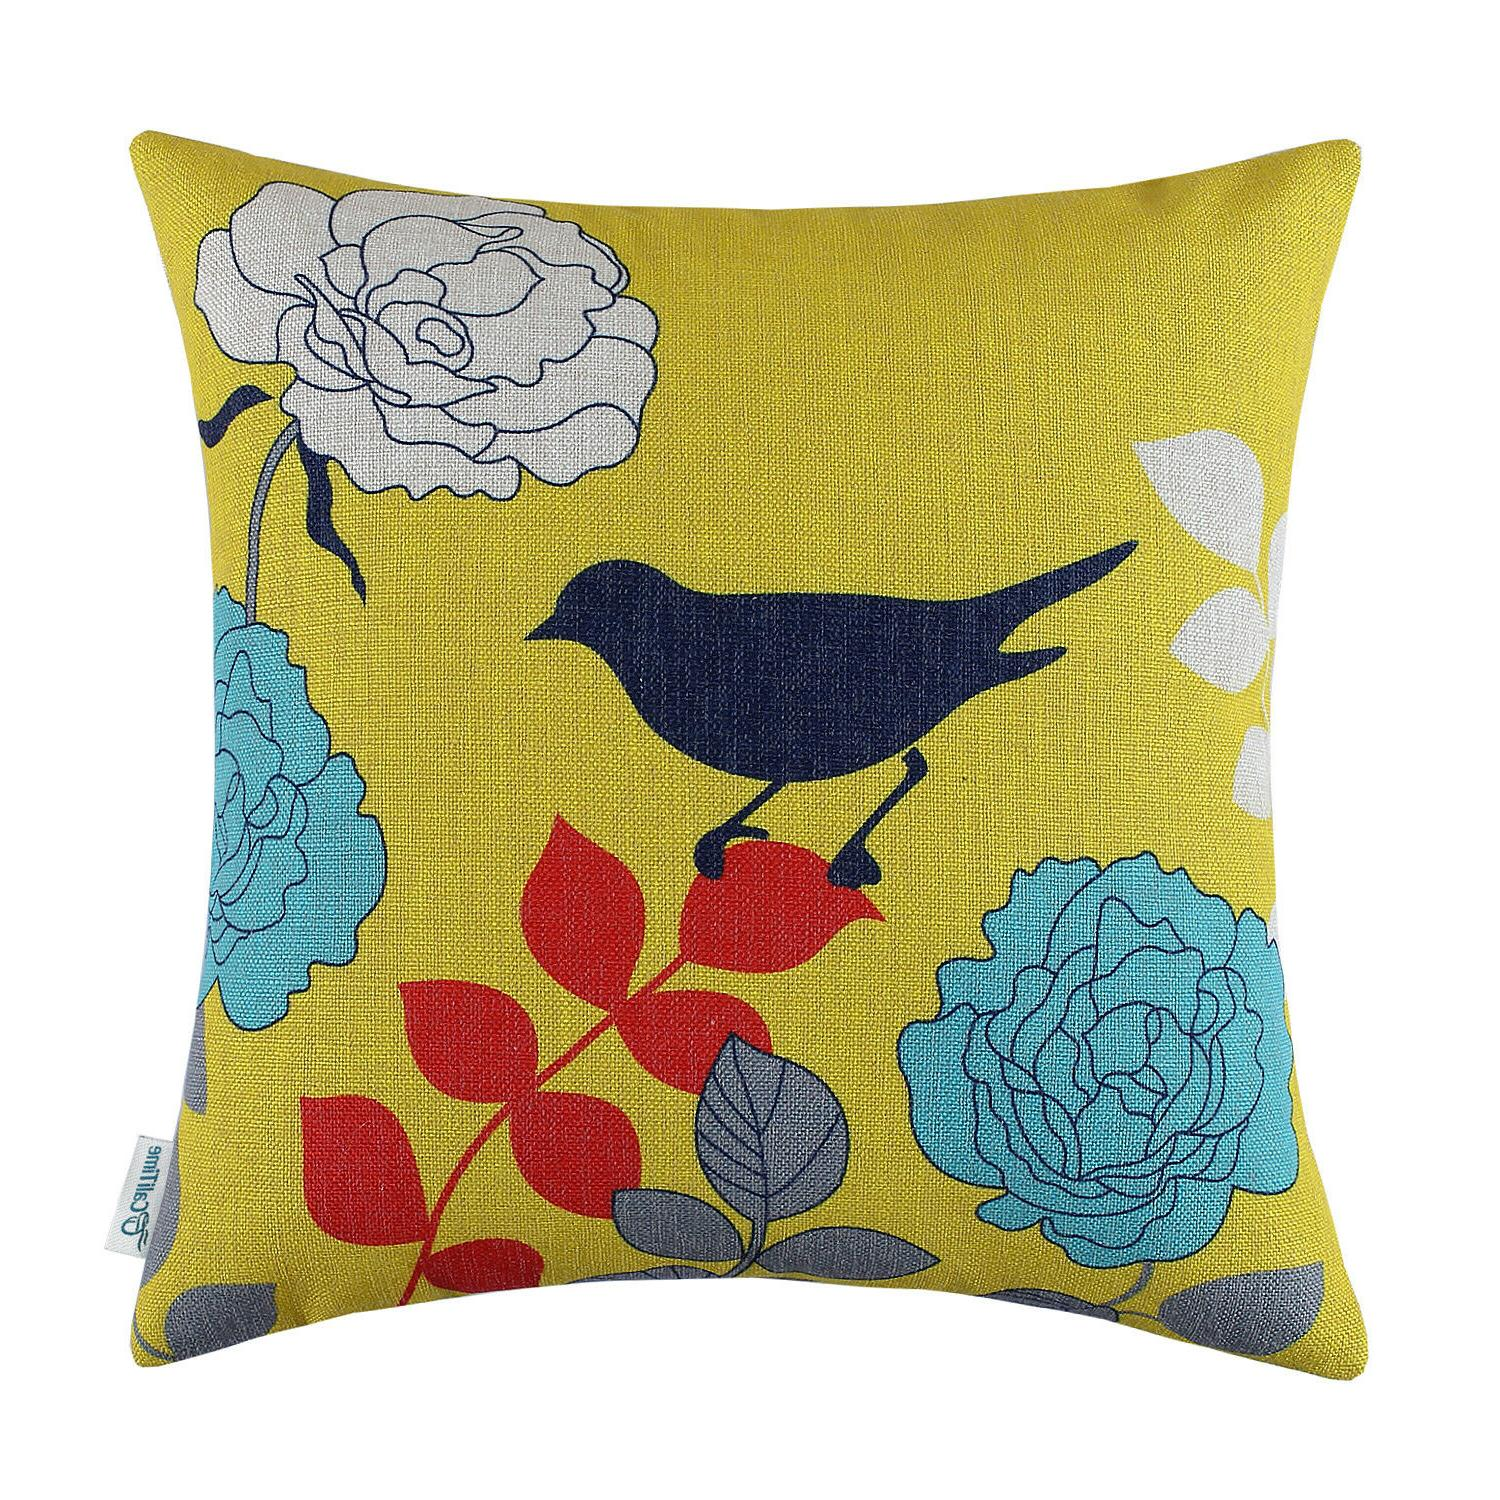 square throw pillows cases cushion covers florals